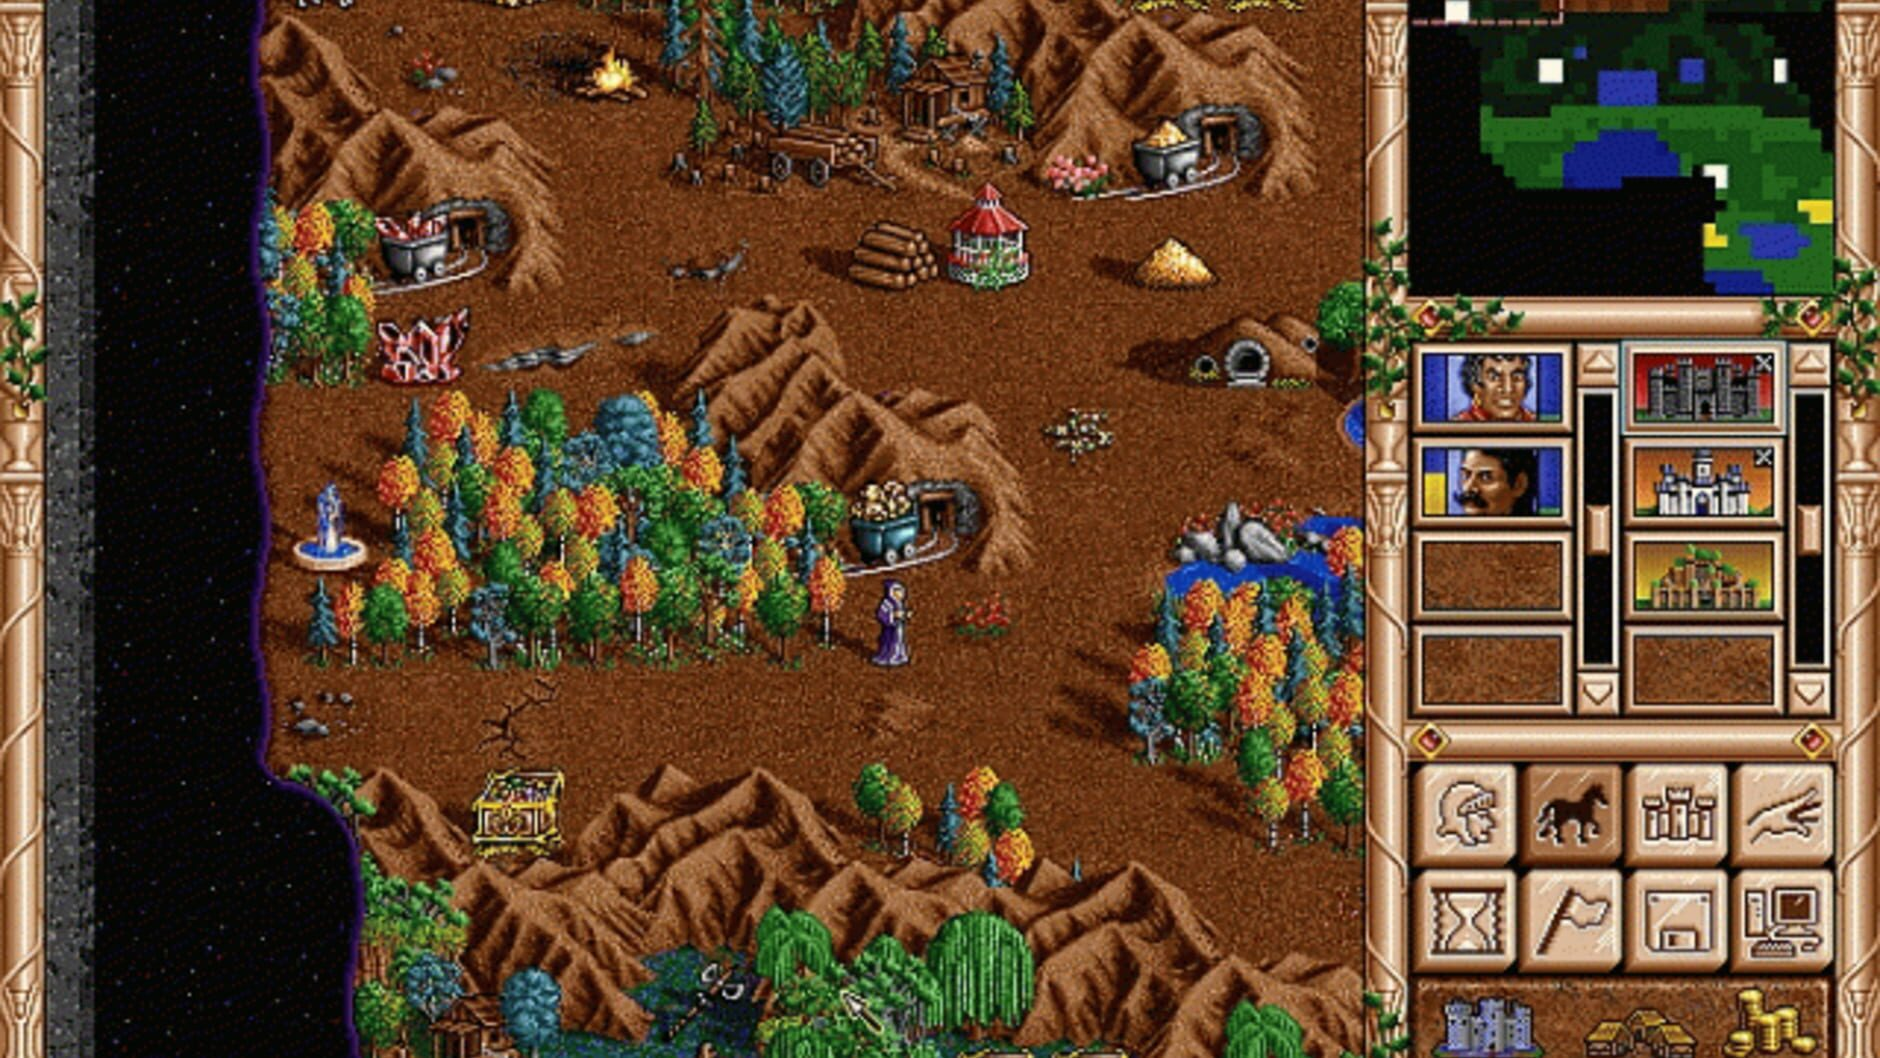 Heroes of Might and Magic II: The Succession Wars - 1